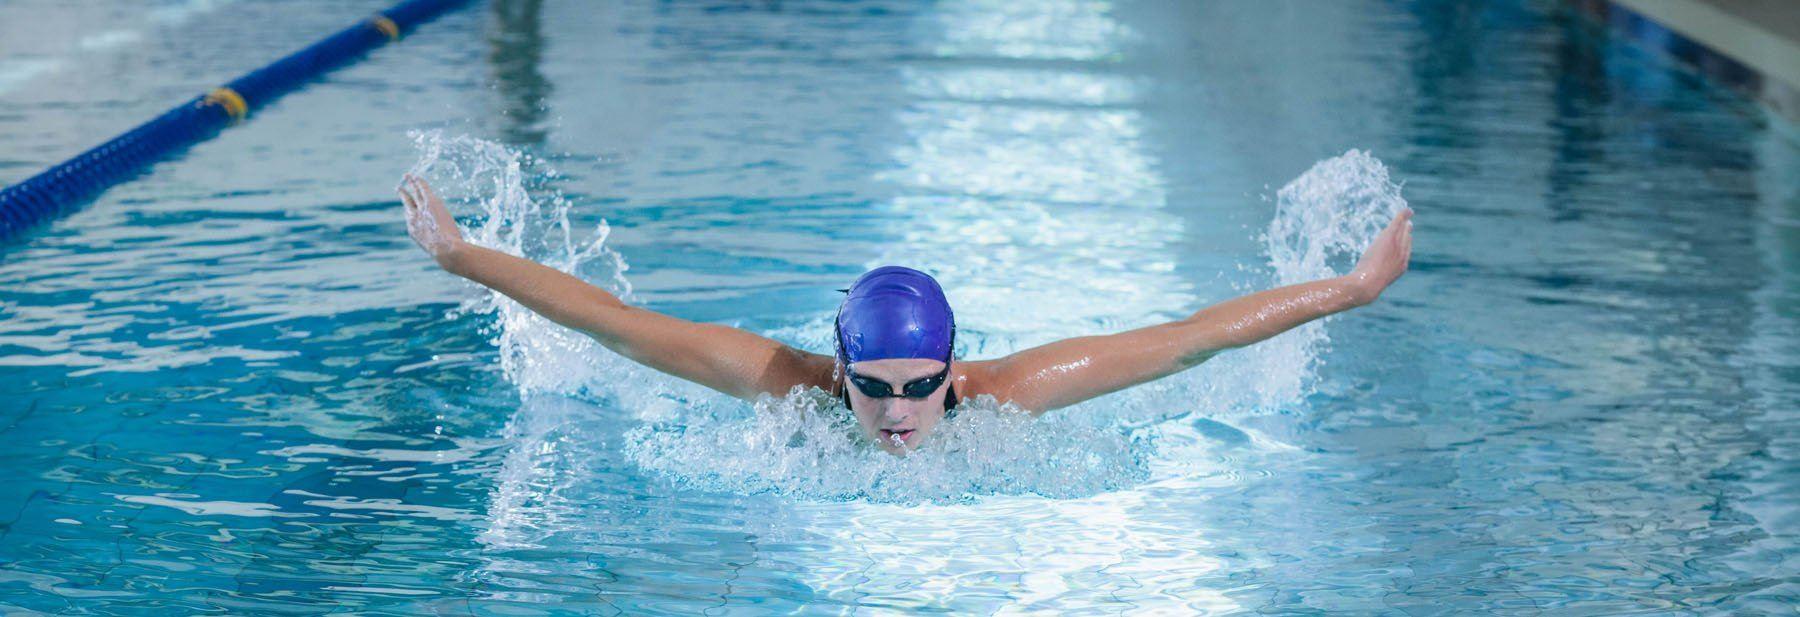 Swimming Management Software for Clubs